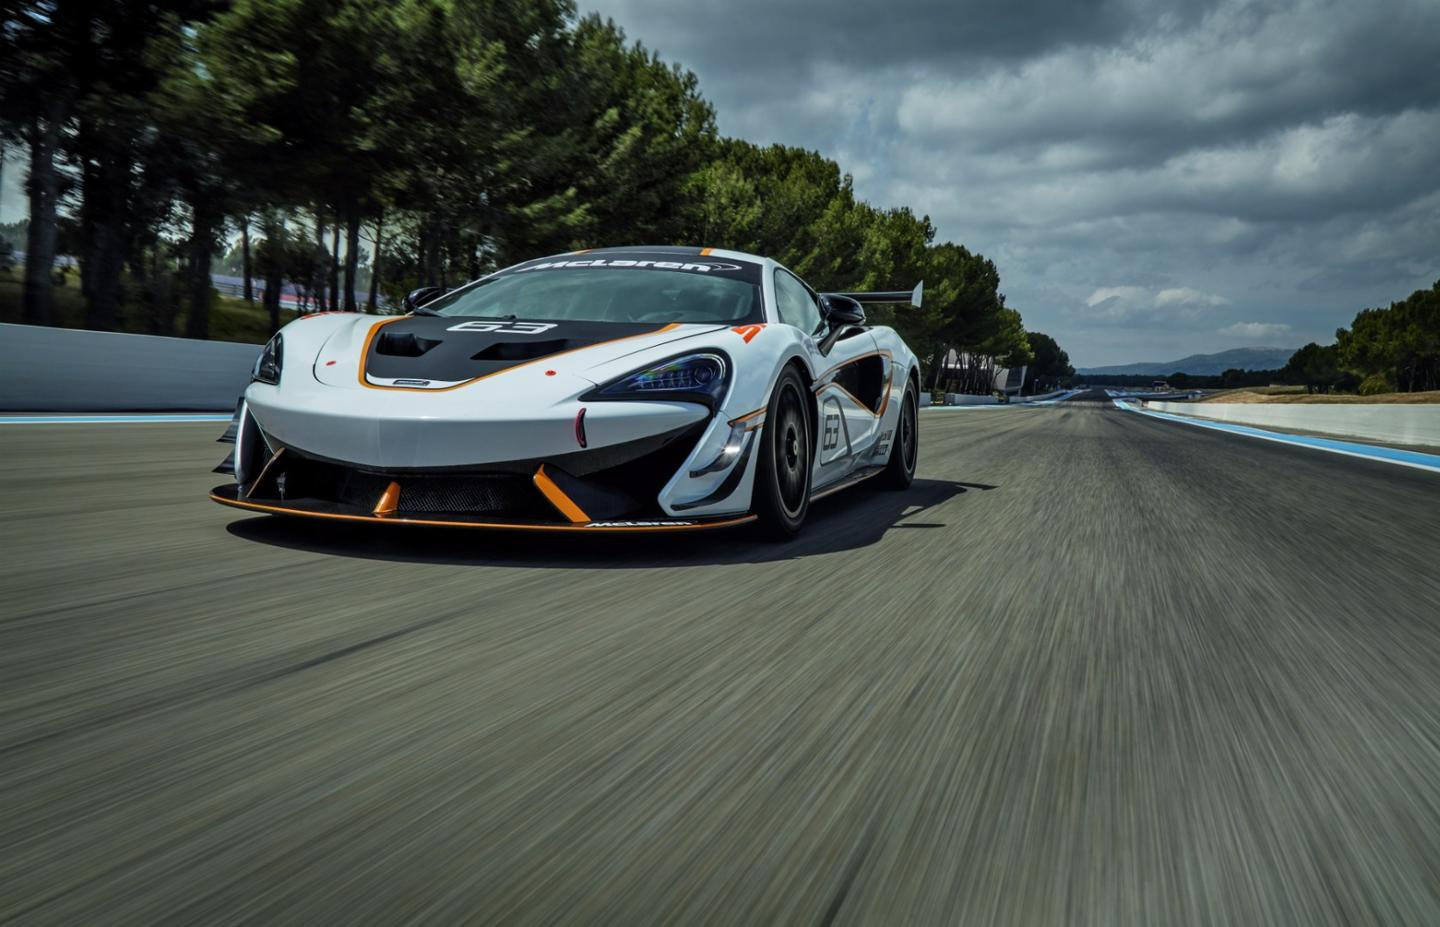 The 570S Sprint package includes a front splitter and dive planes